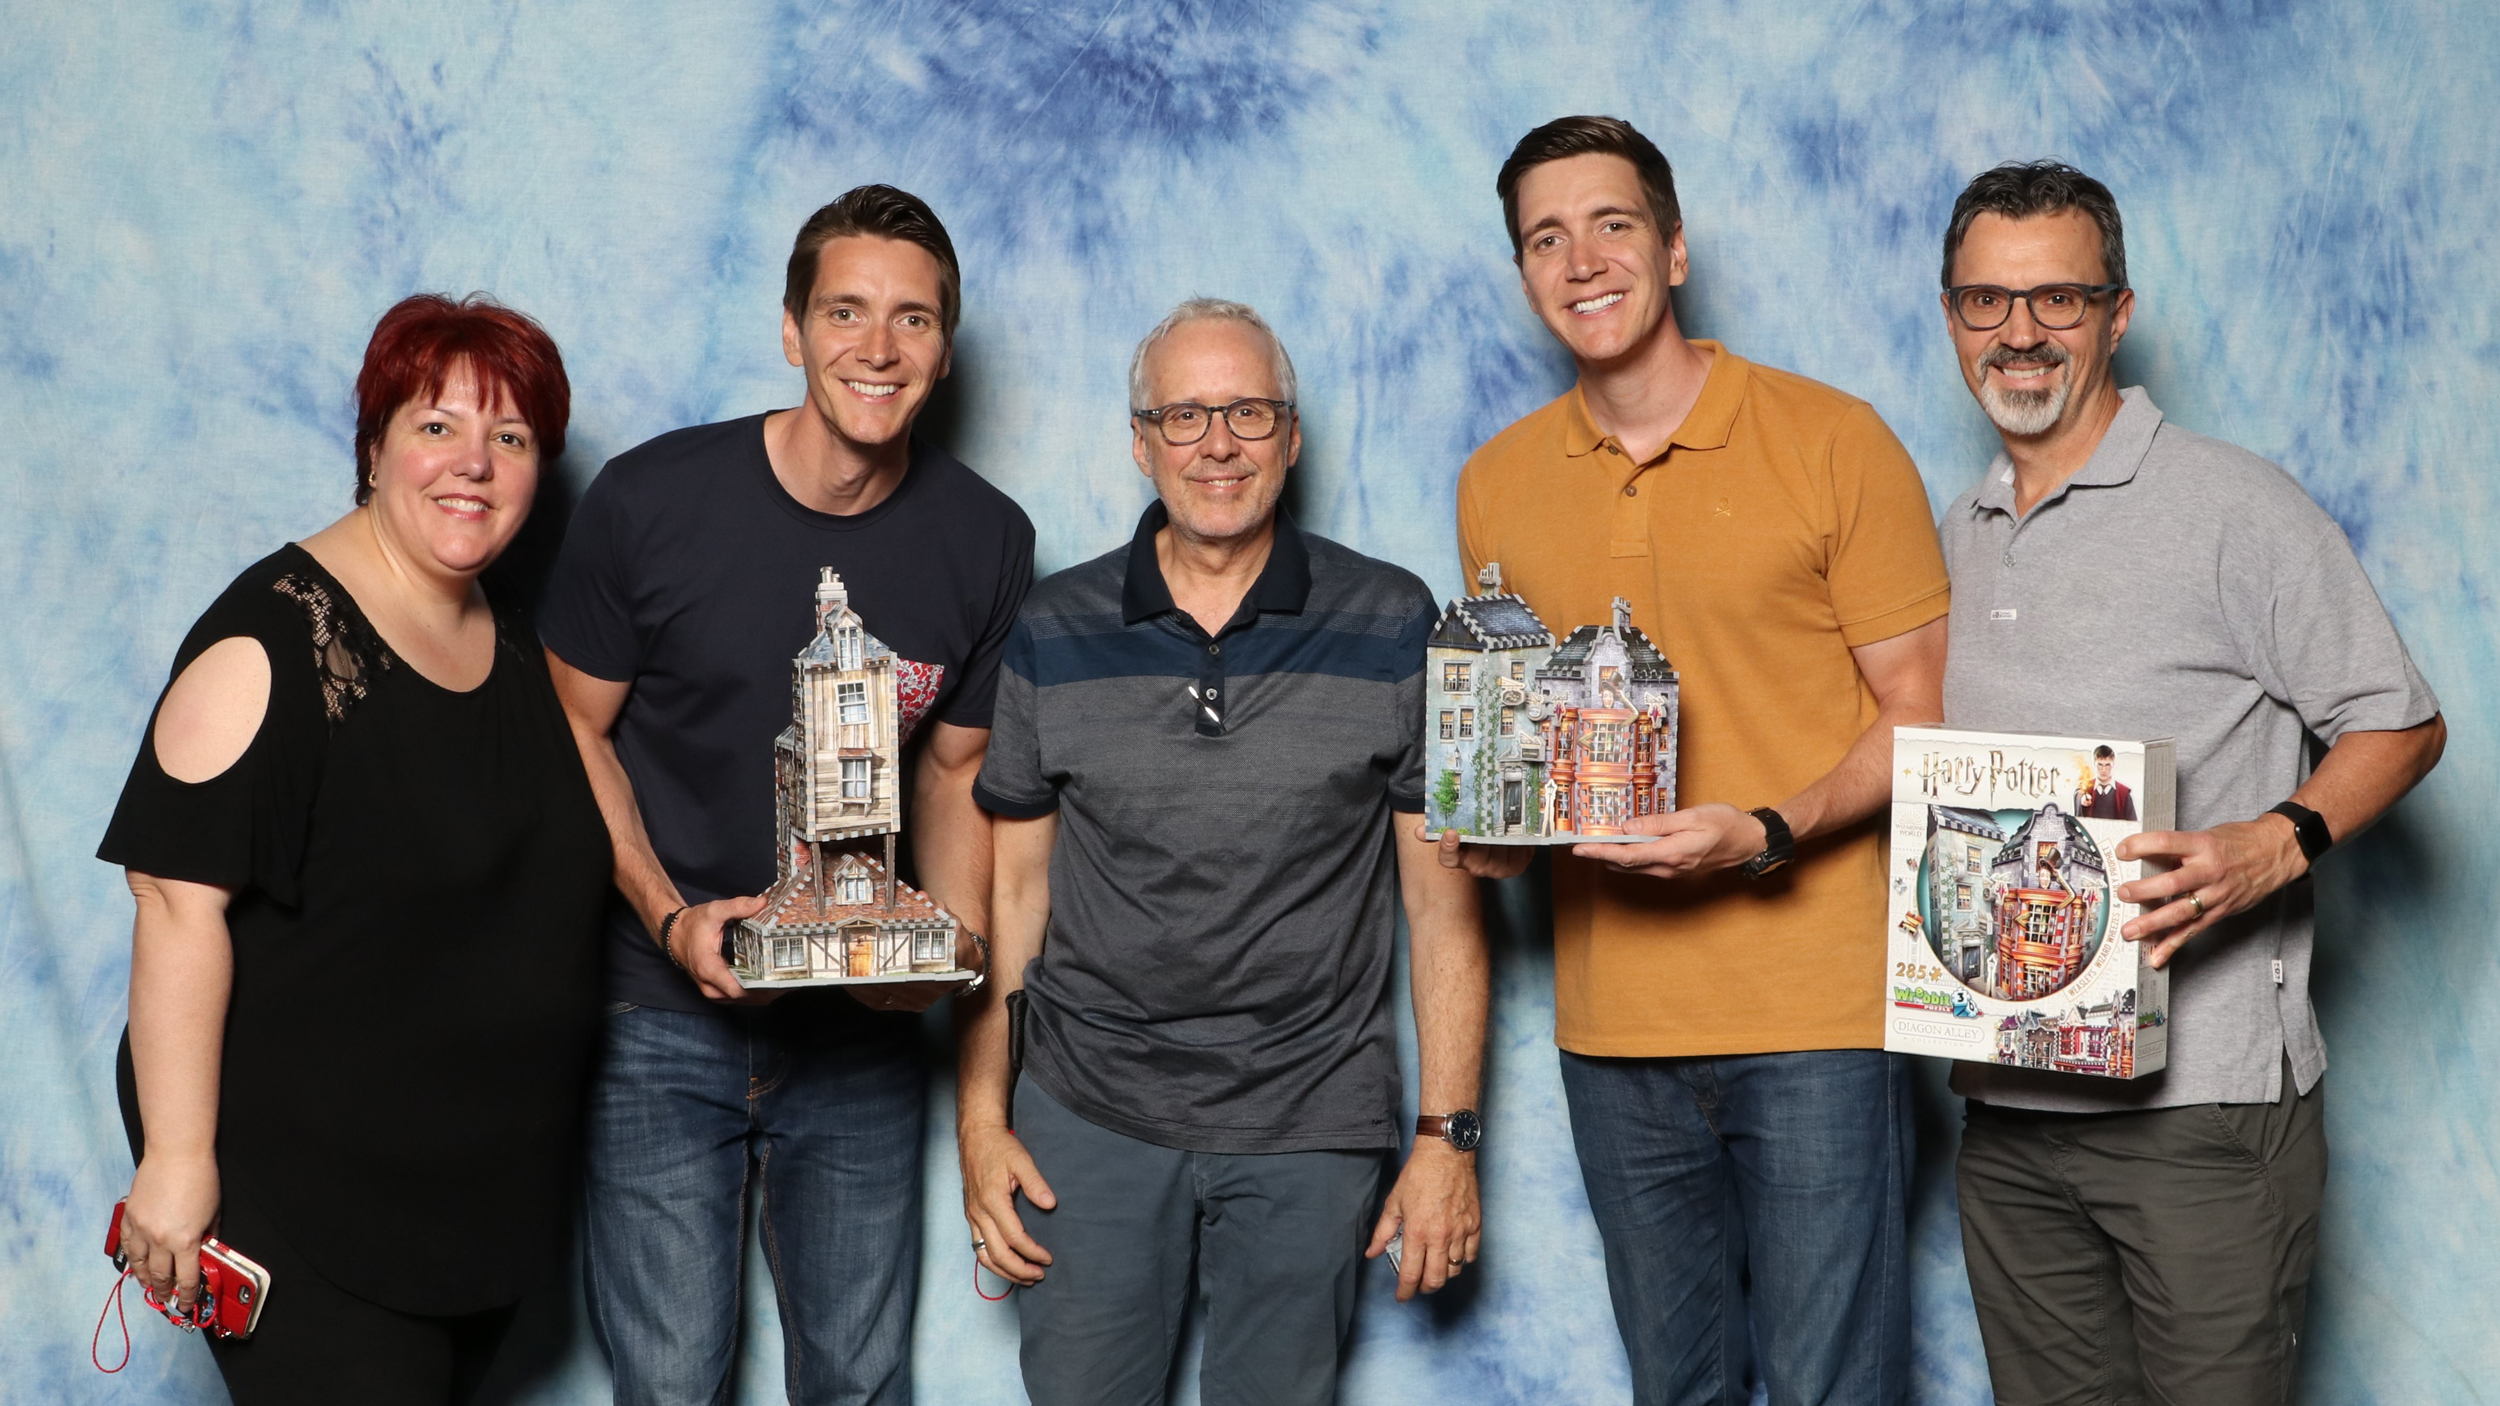 Wrebbit 3D Team with Oliver Phelps and James Phelps Actors playing Fred and George Weasley in Harry Potter movies